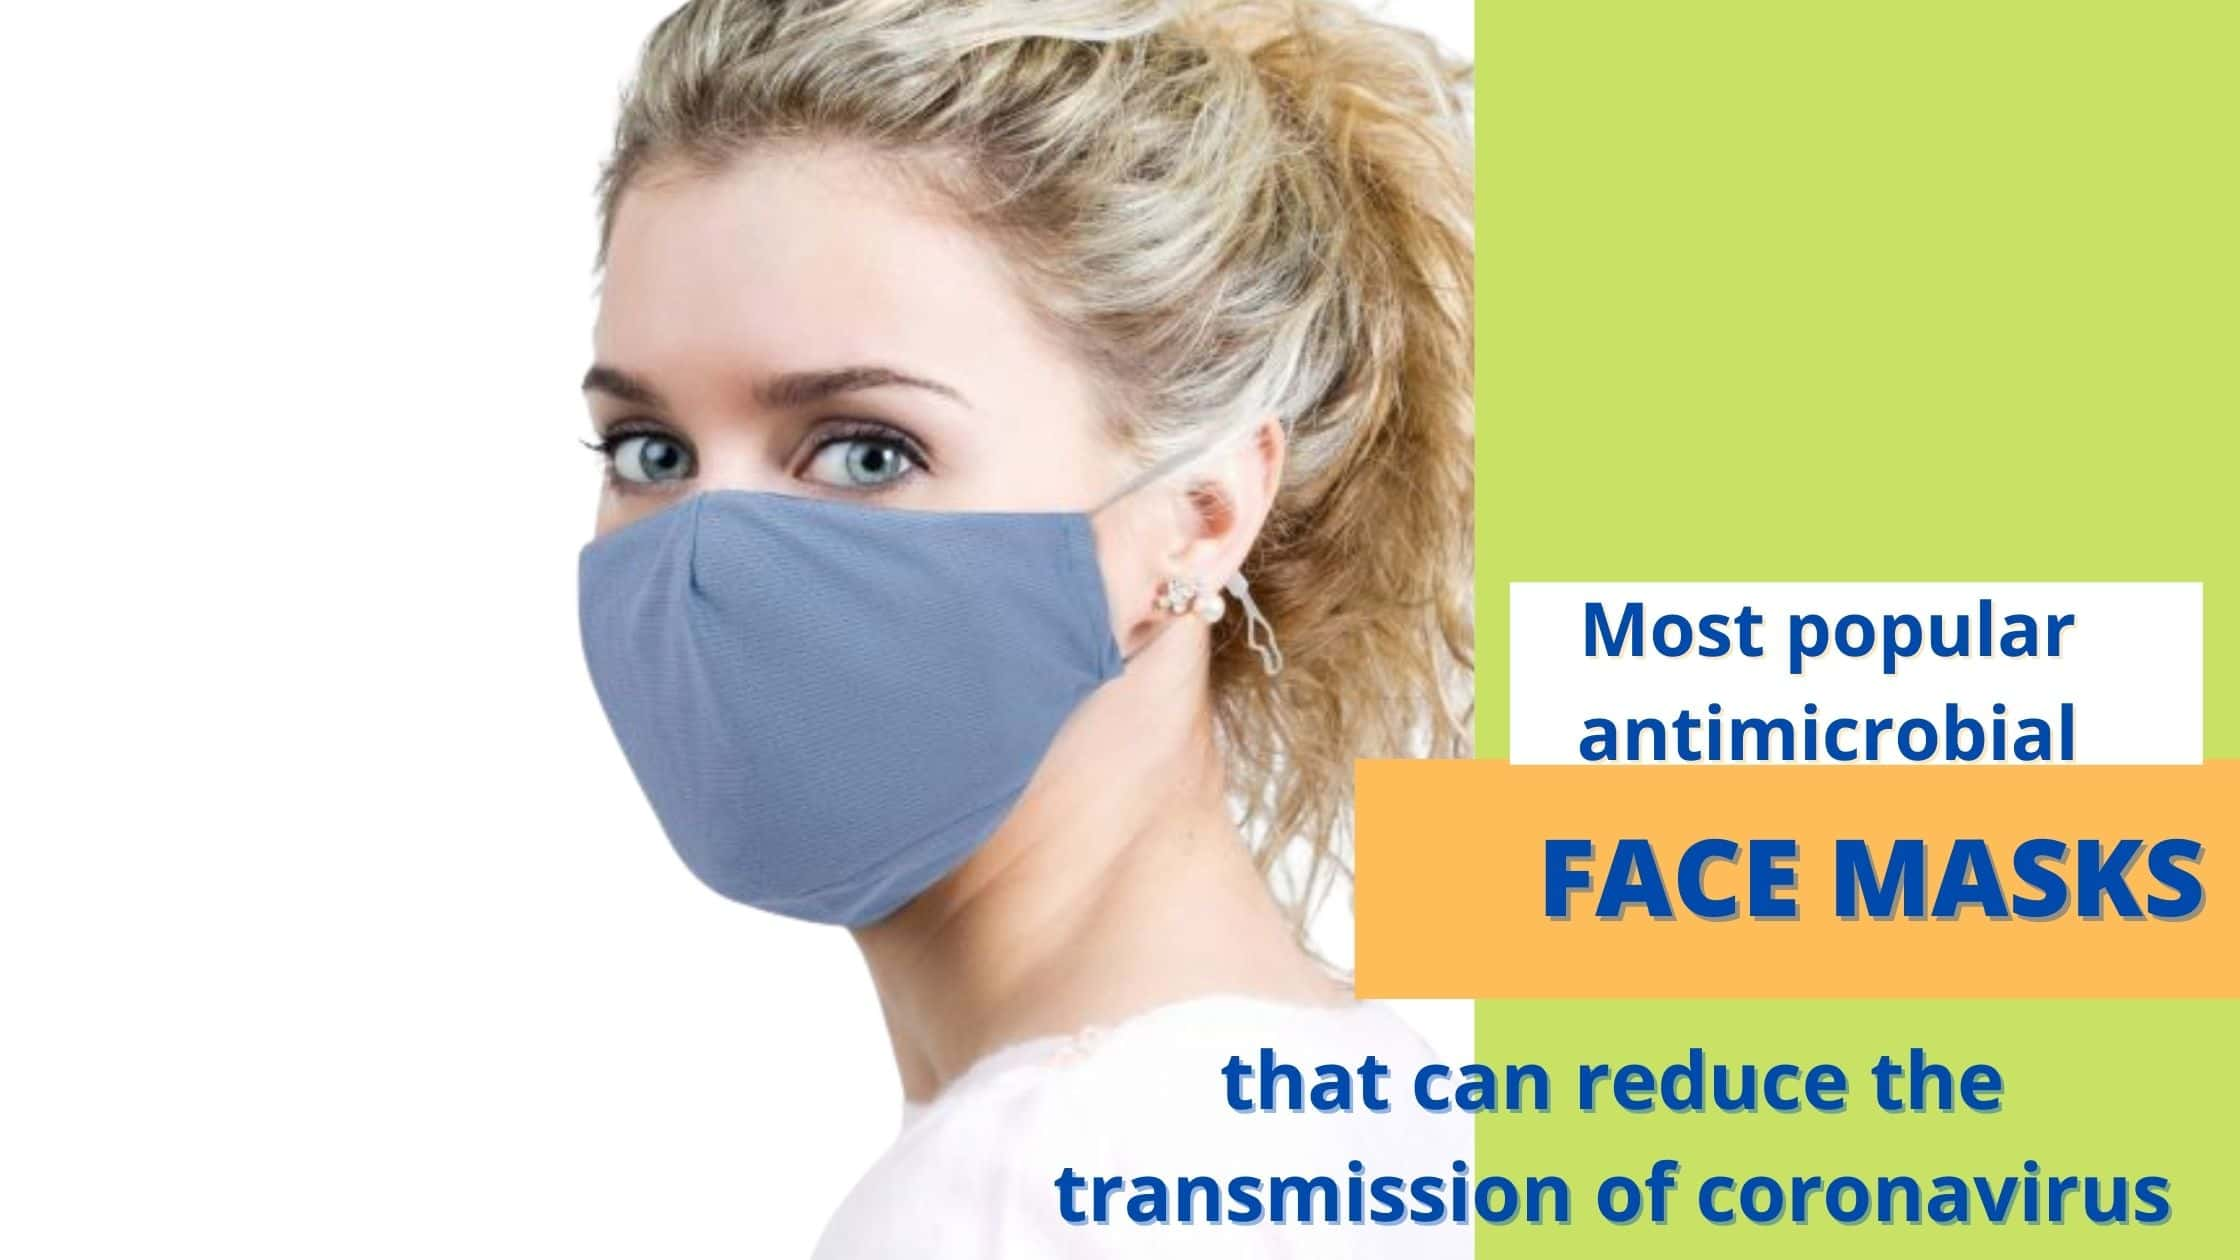 Most popular antimicrobial face masks that reduce the spread of coronavirus